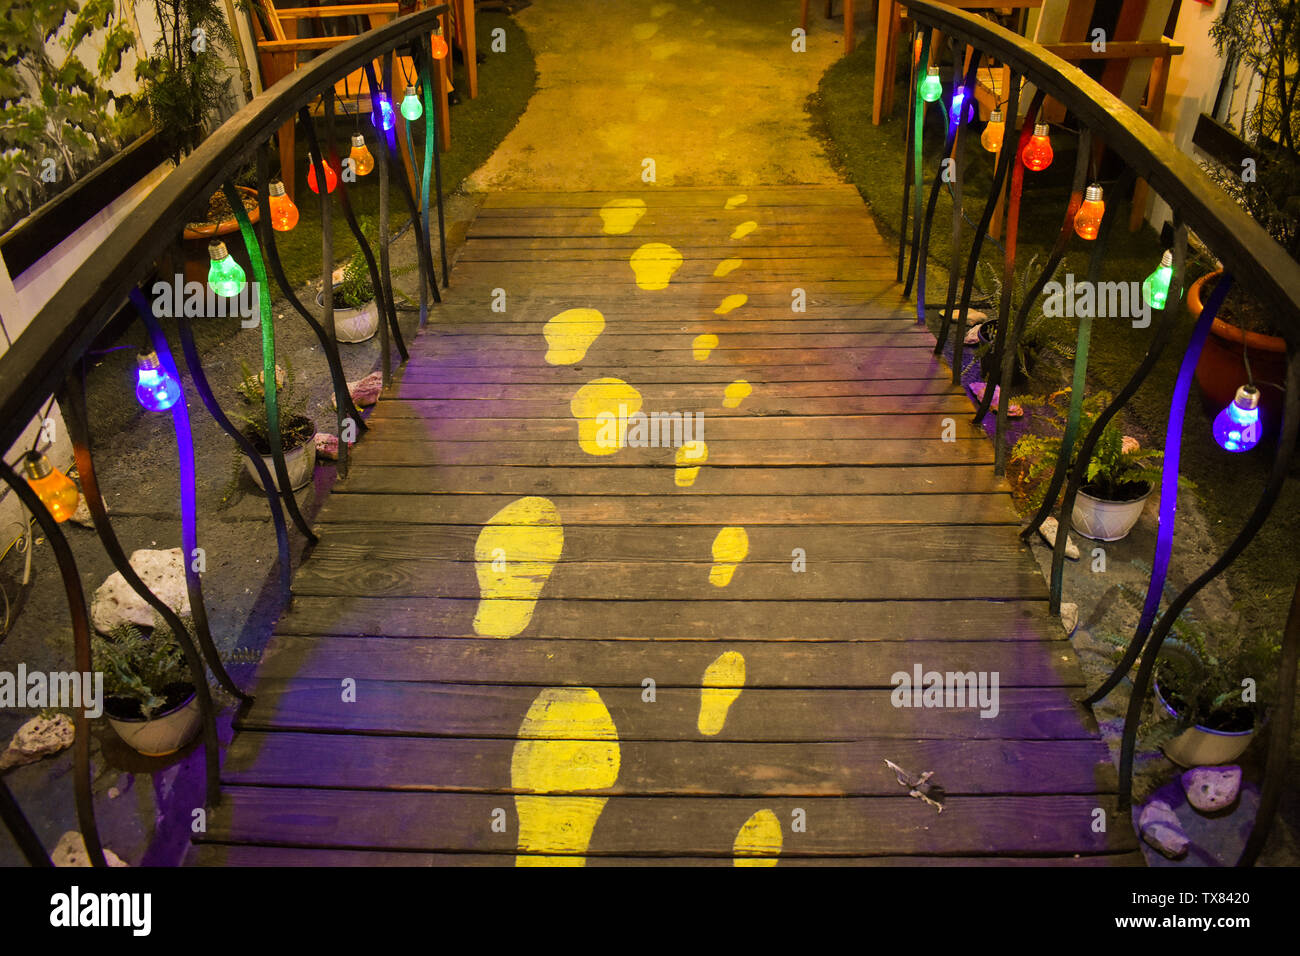 Innovative idea of human foot traces on the wooden pathway with colorful lights hanging on the railings.  Attractive hidden gem travel destination in - Stock Image